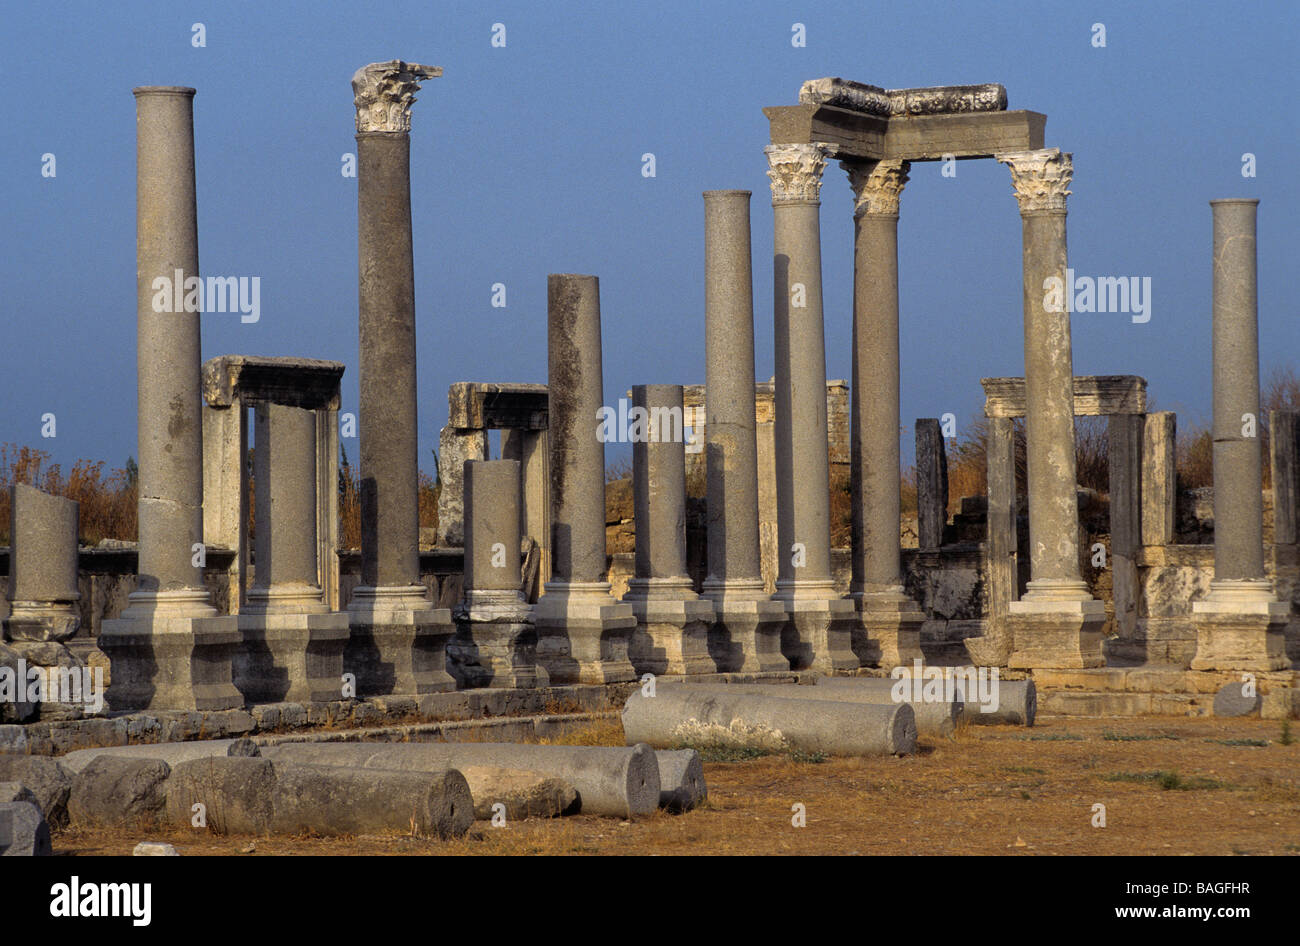 Turkey, Perge, amphitheater built in the second century - Stock Image